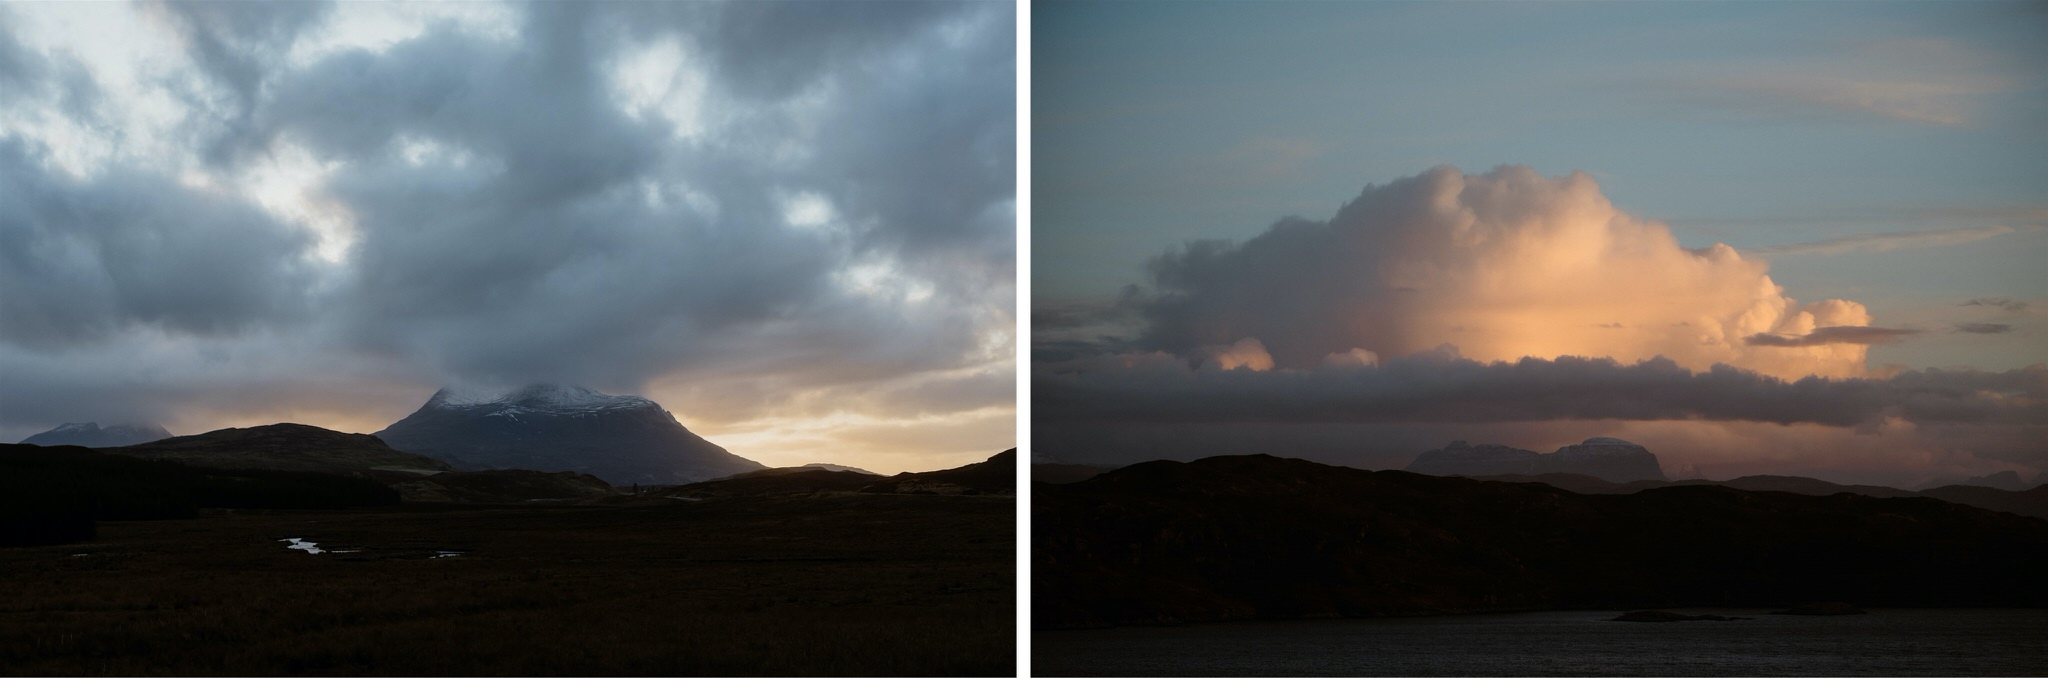 Sunset over the sea in Assynt, Scotland - on the North Coast 500